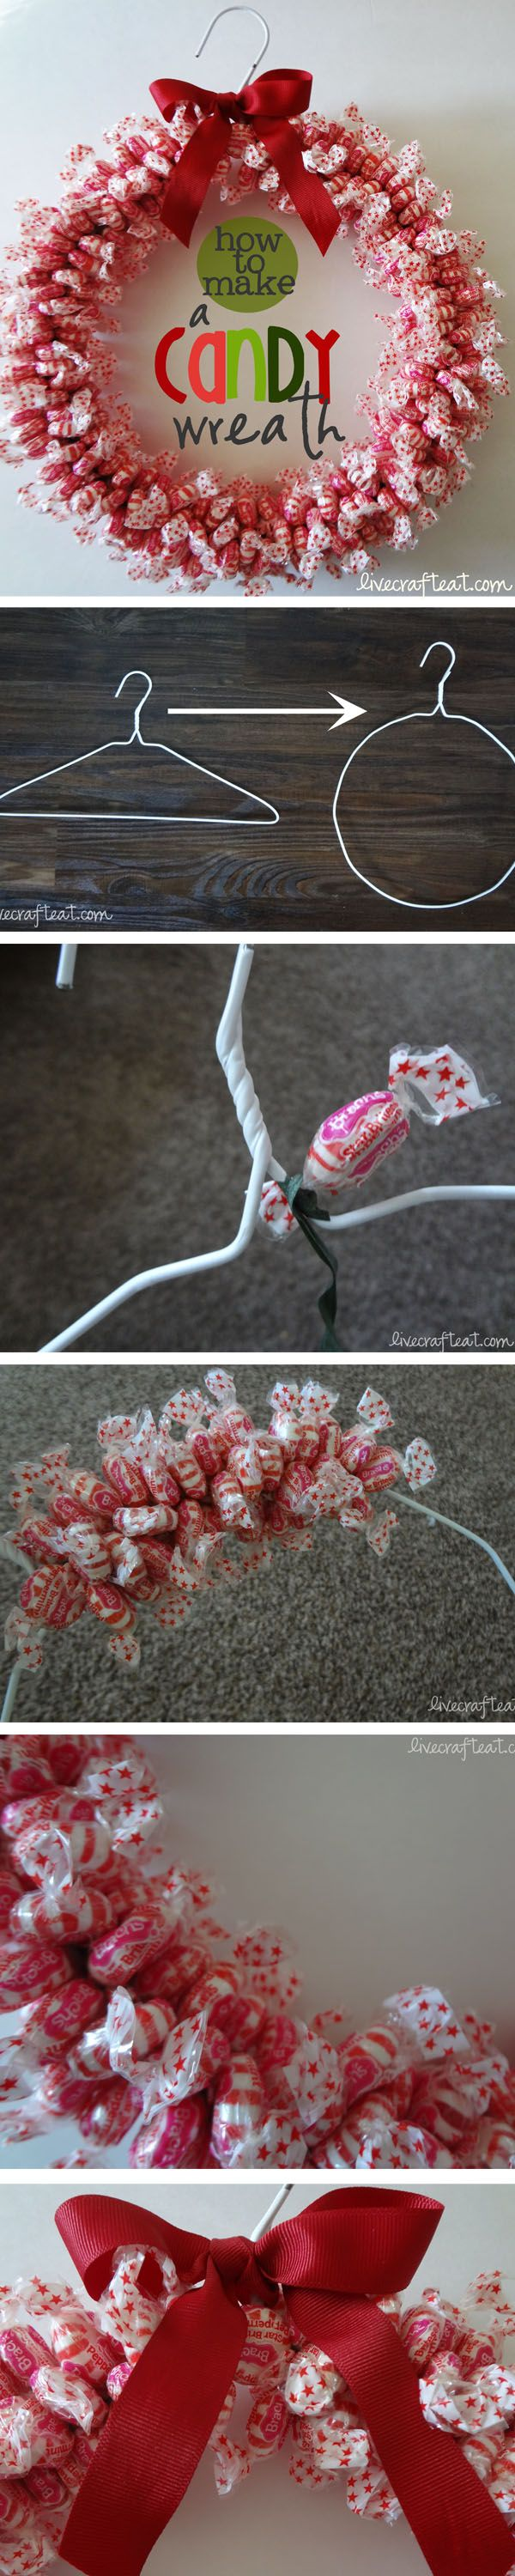 such a fun candy wreath to make for your own home or for neighbors. it looks great AND tastes great, too! see the how-to at www.livecrafteat.com